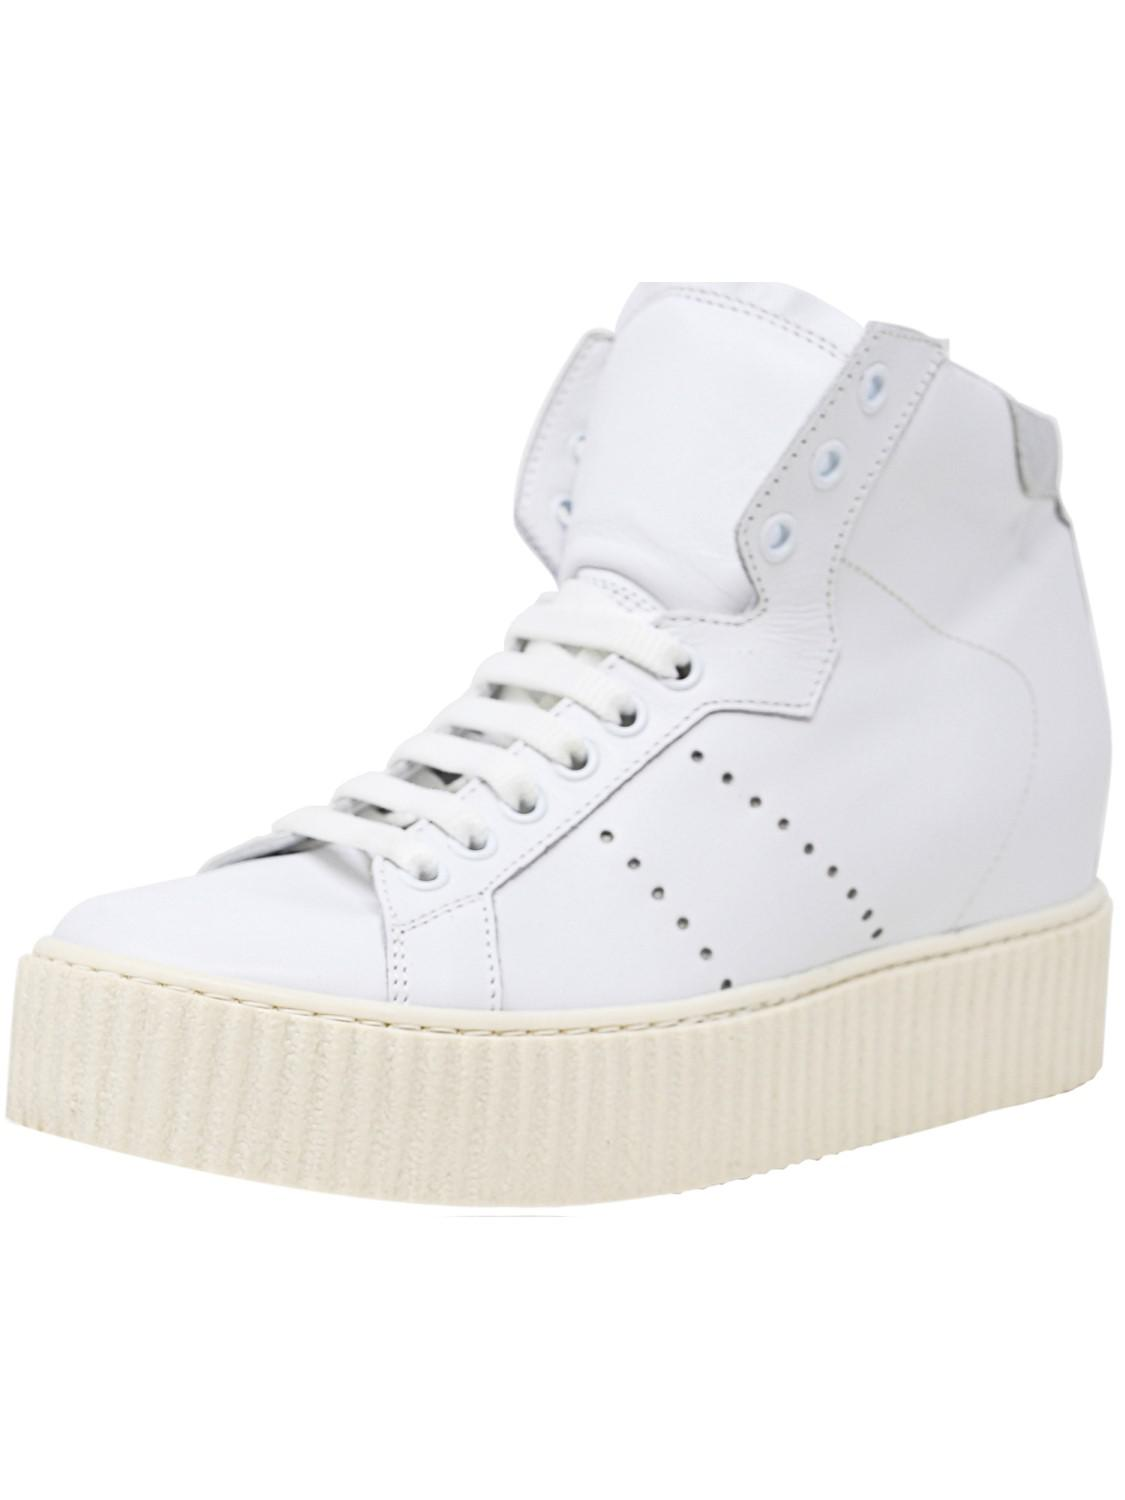 8585fd905f0 Lyst - Steve Madden Marty Leather High-top Fashion Sneaker - 9m in White